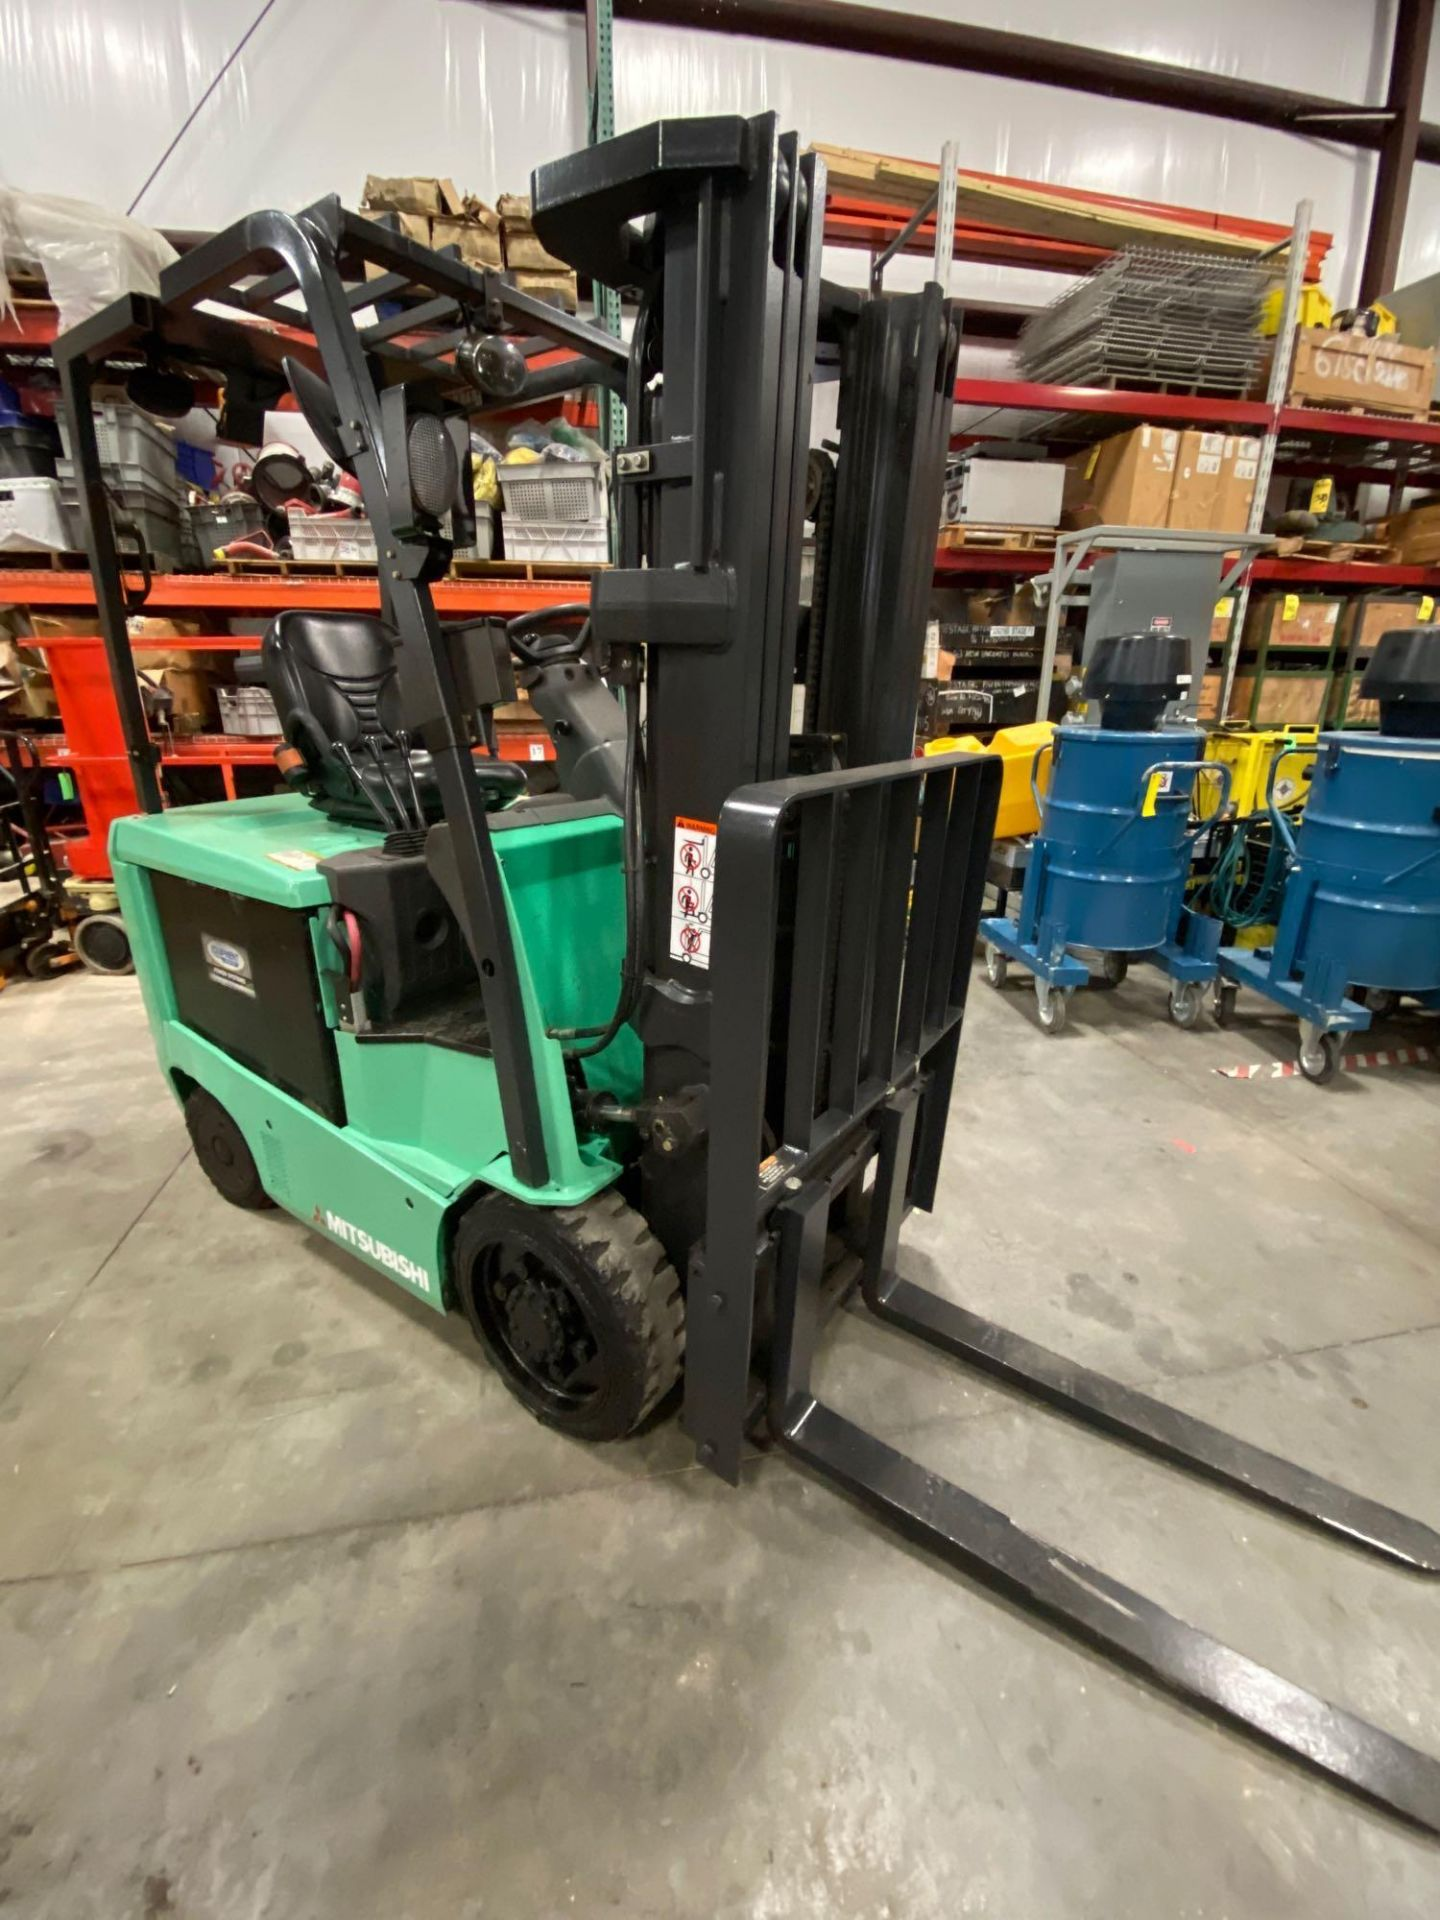 "2015 MITSUBISHI FBC25N2 36V FORKLIFT, APPROX 4500LB CAPACITY, TILT, SIDESHIFT, LIFT 188"" MAX HEIGHT, - Image 4 of 20"